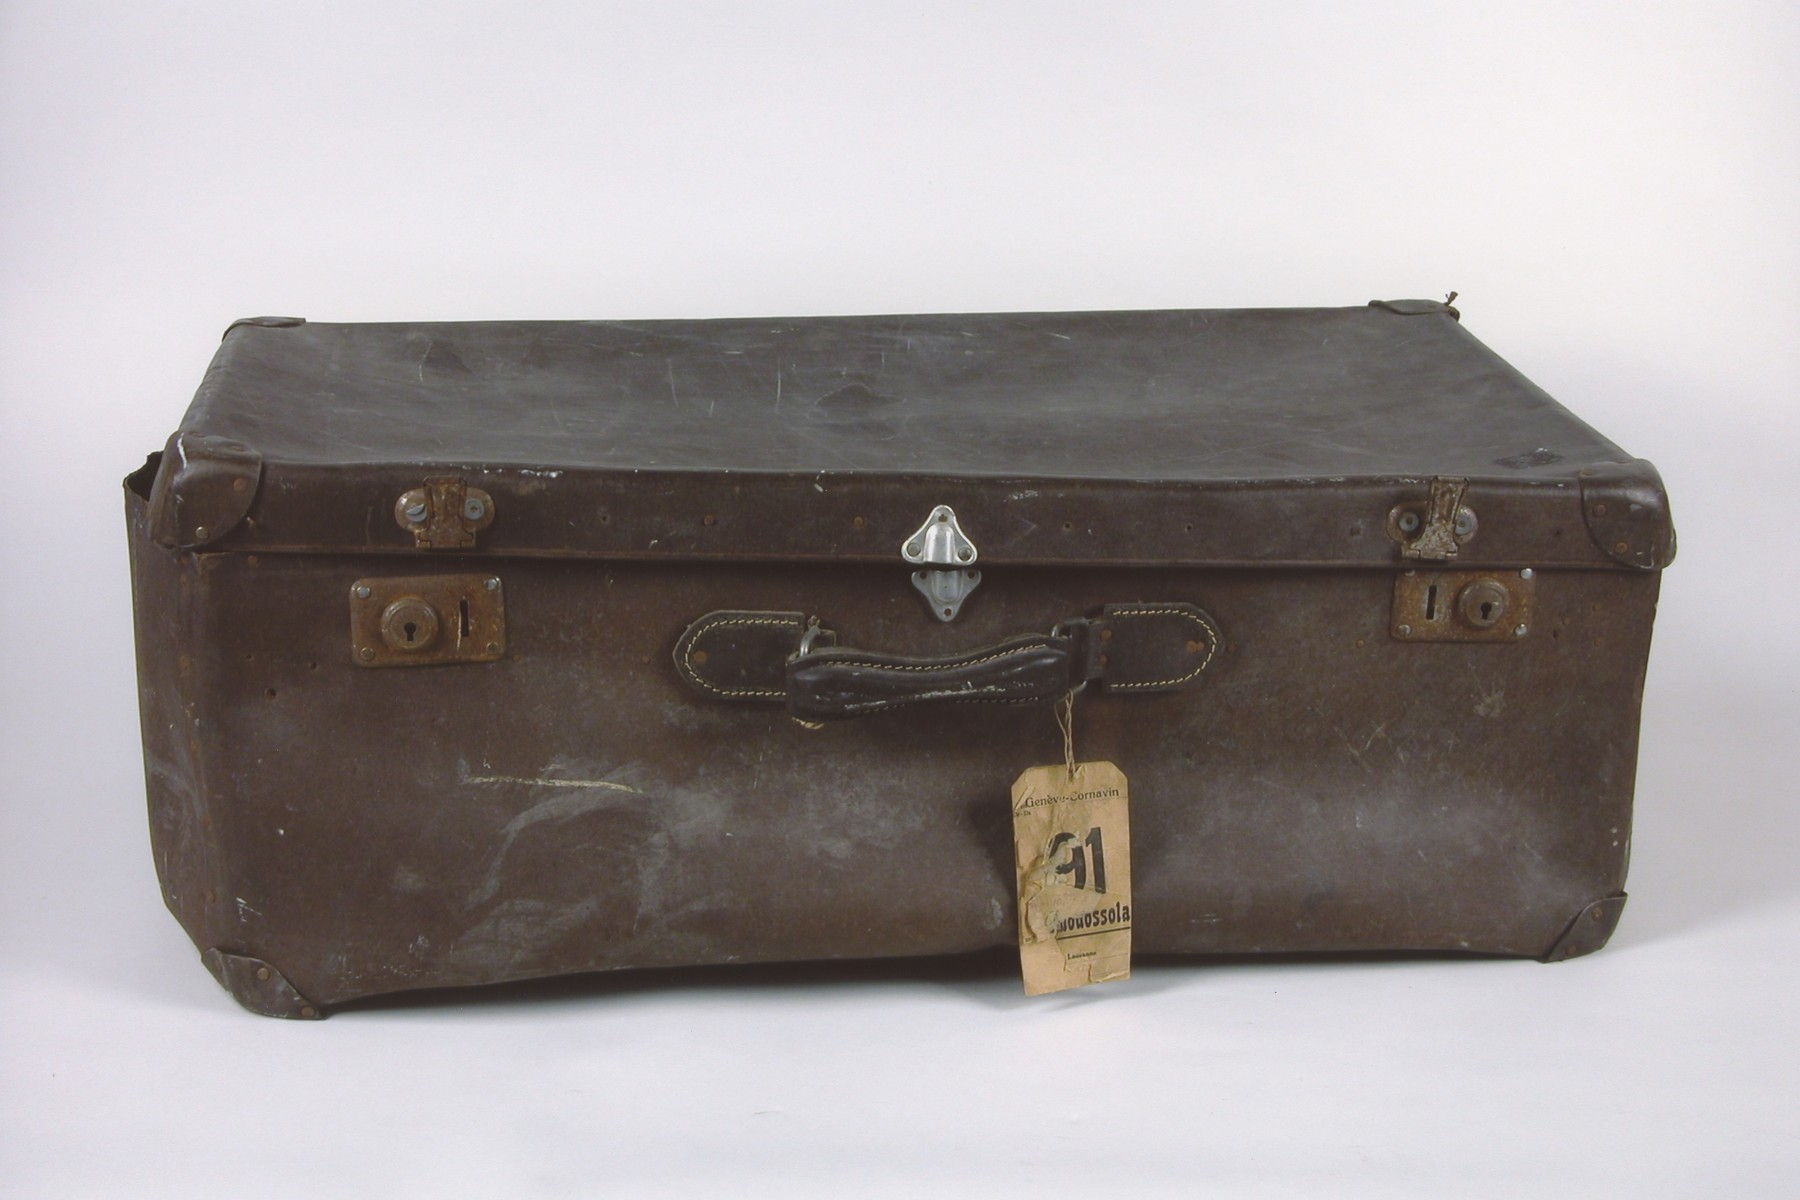 A suitcase taken on the Kasztner rescue train by Bela Gondos, a Jewish physician from Budapest.  The suitcase was used by the family in Bergen-Belsen, Switzerland and when they immigrated to the U.S.